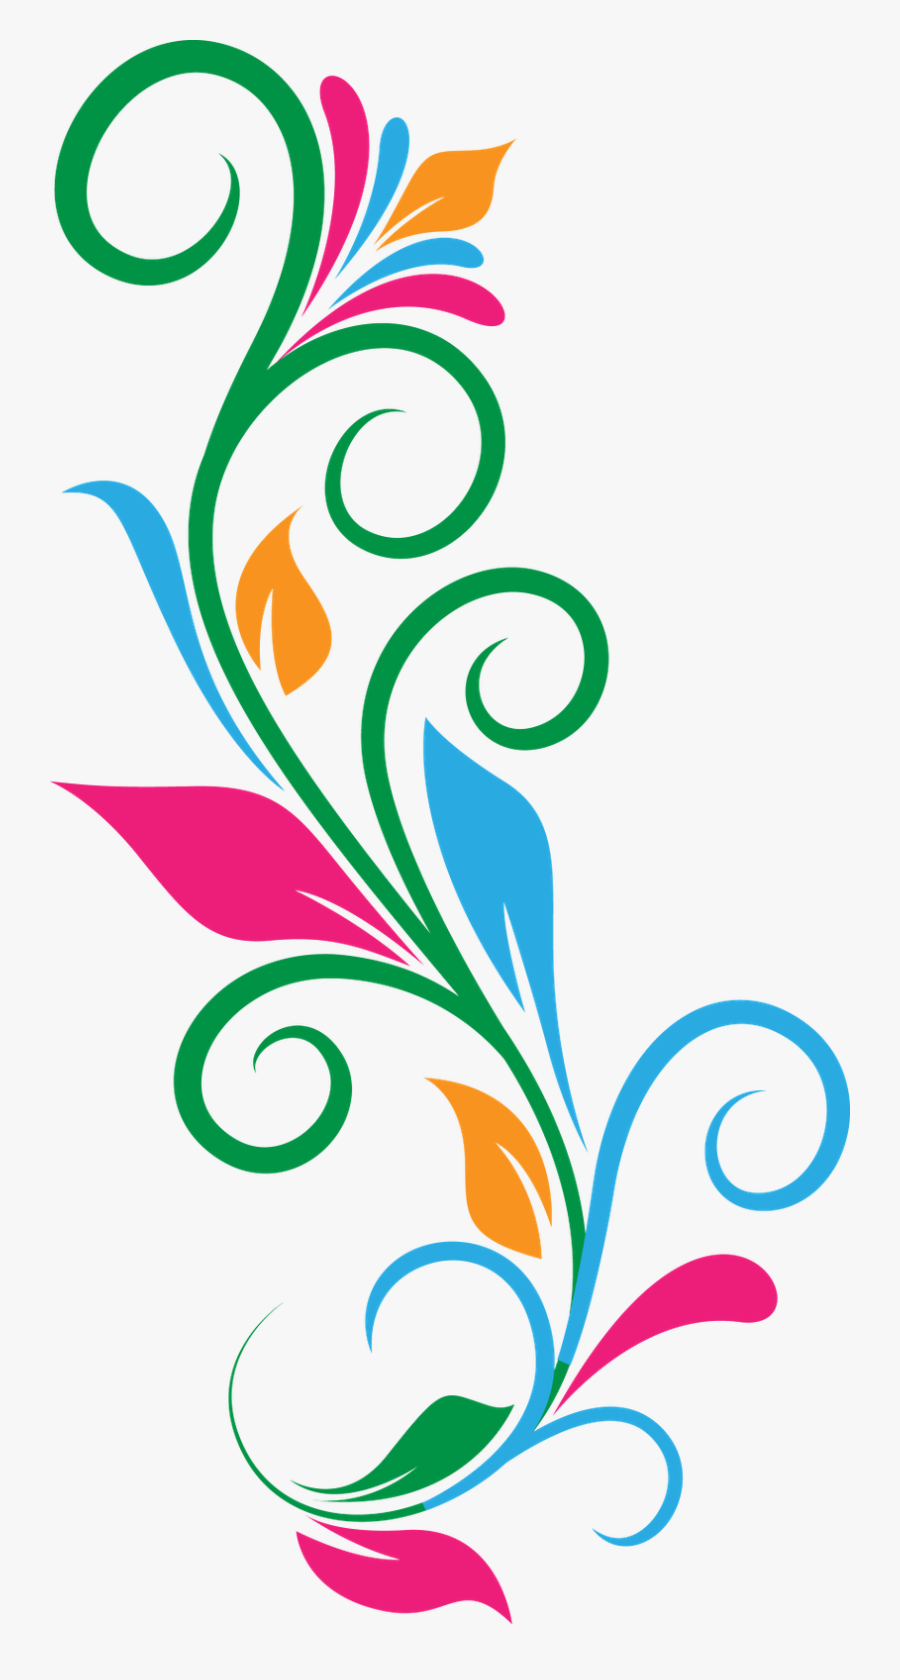 Clipart Design Abstract - Flower Abstract Design Png, Transparent Clipart